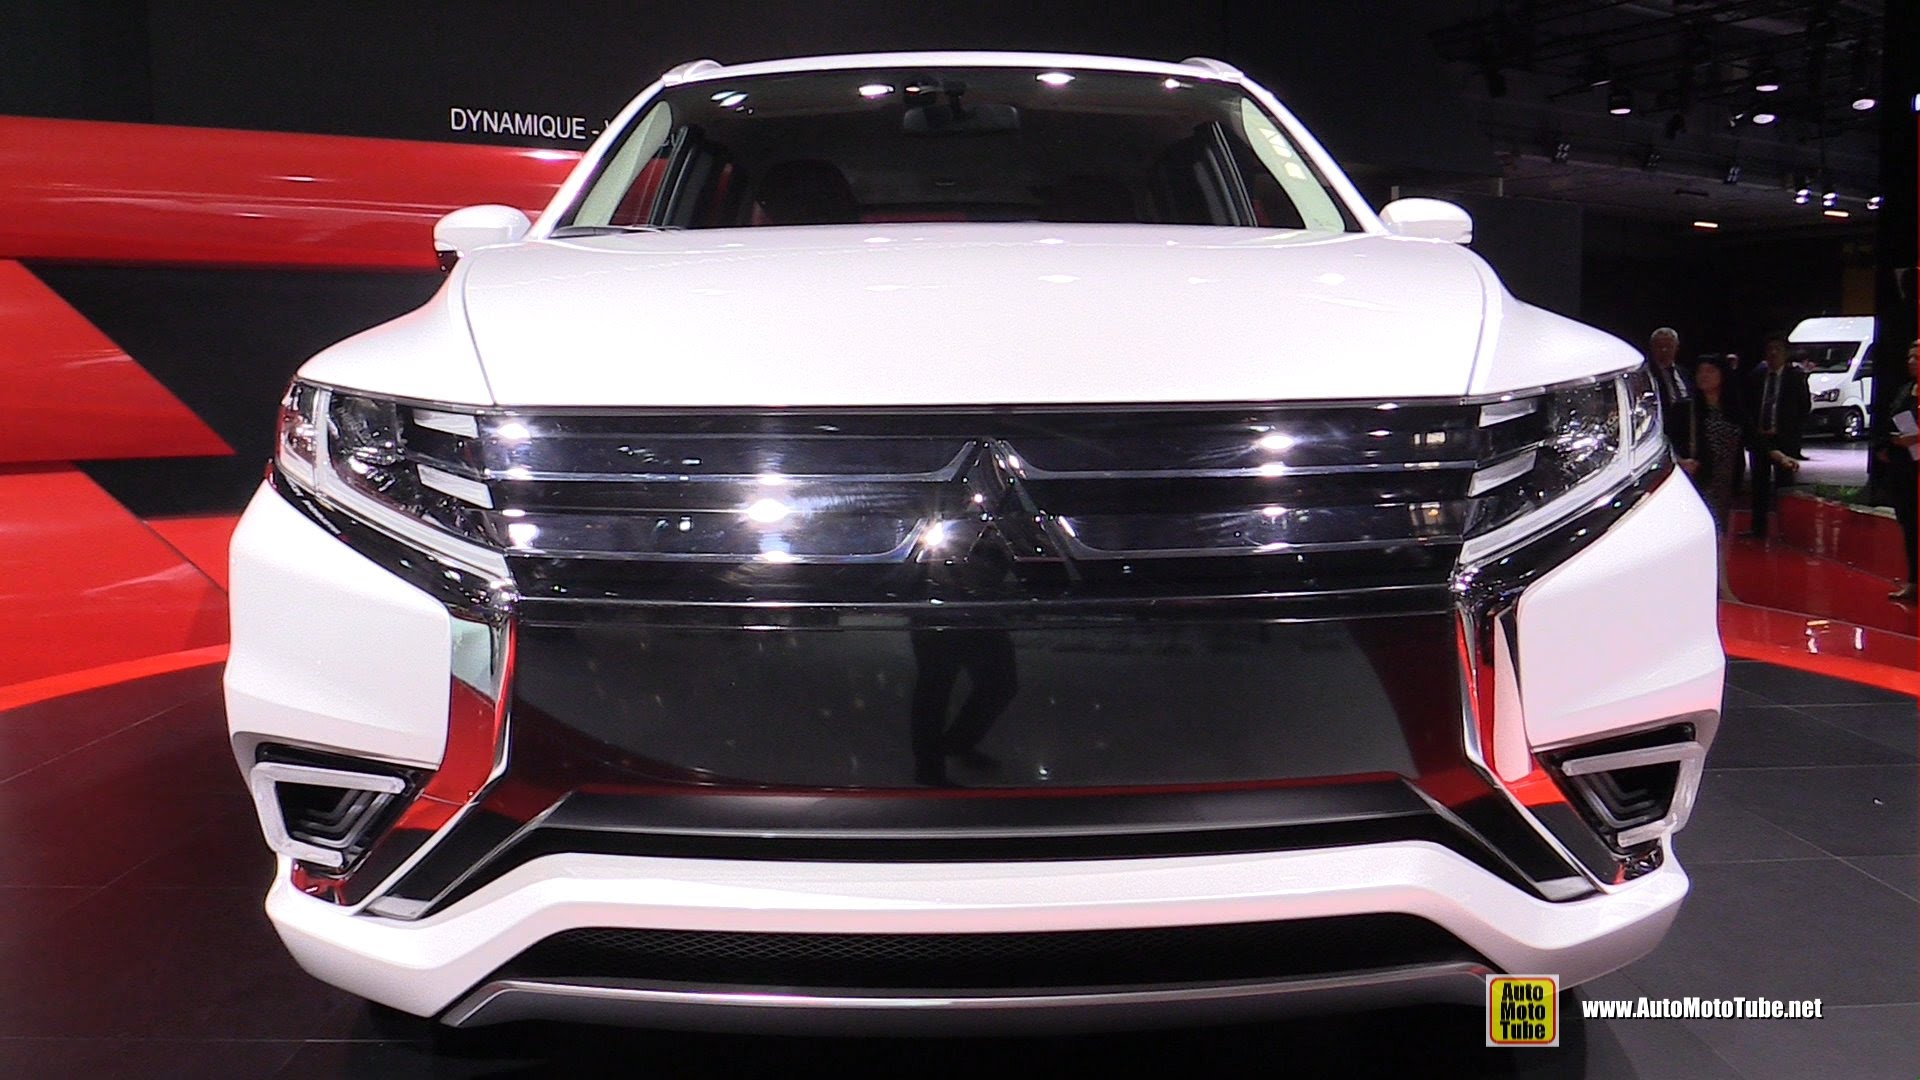 2015 Mitsubishi Outlander PHEV Concept S - Exterior and Interior Walkaround - 2014 Paris Auto Show